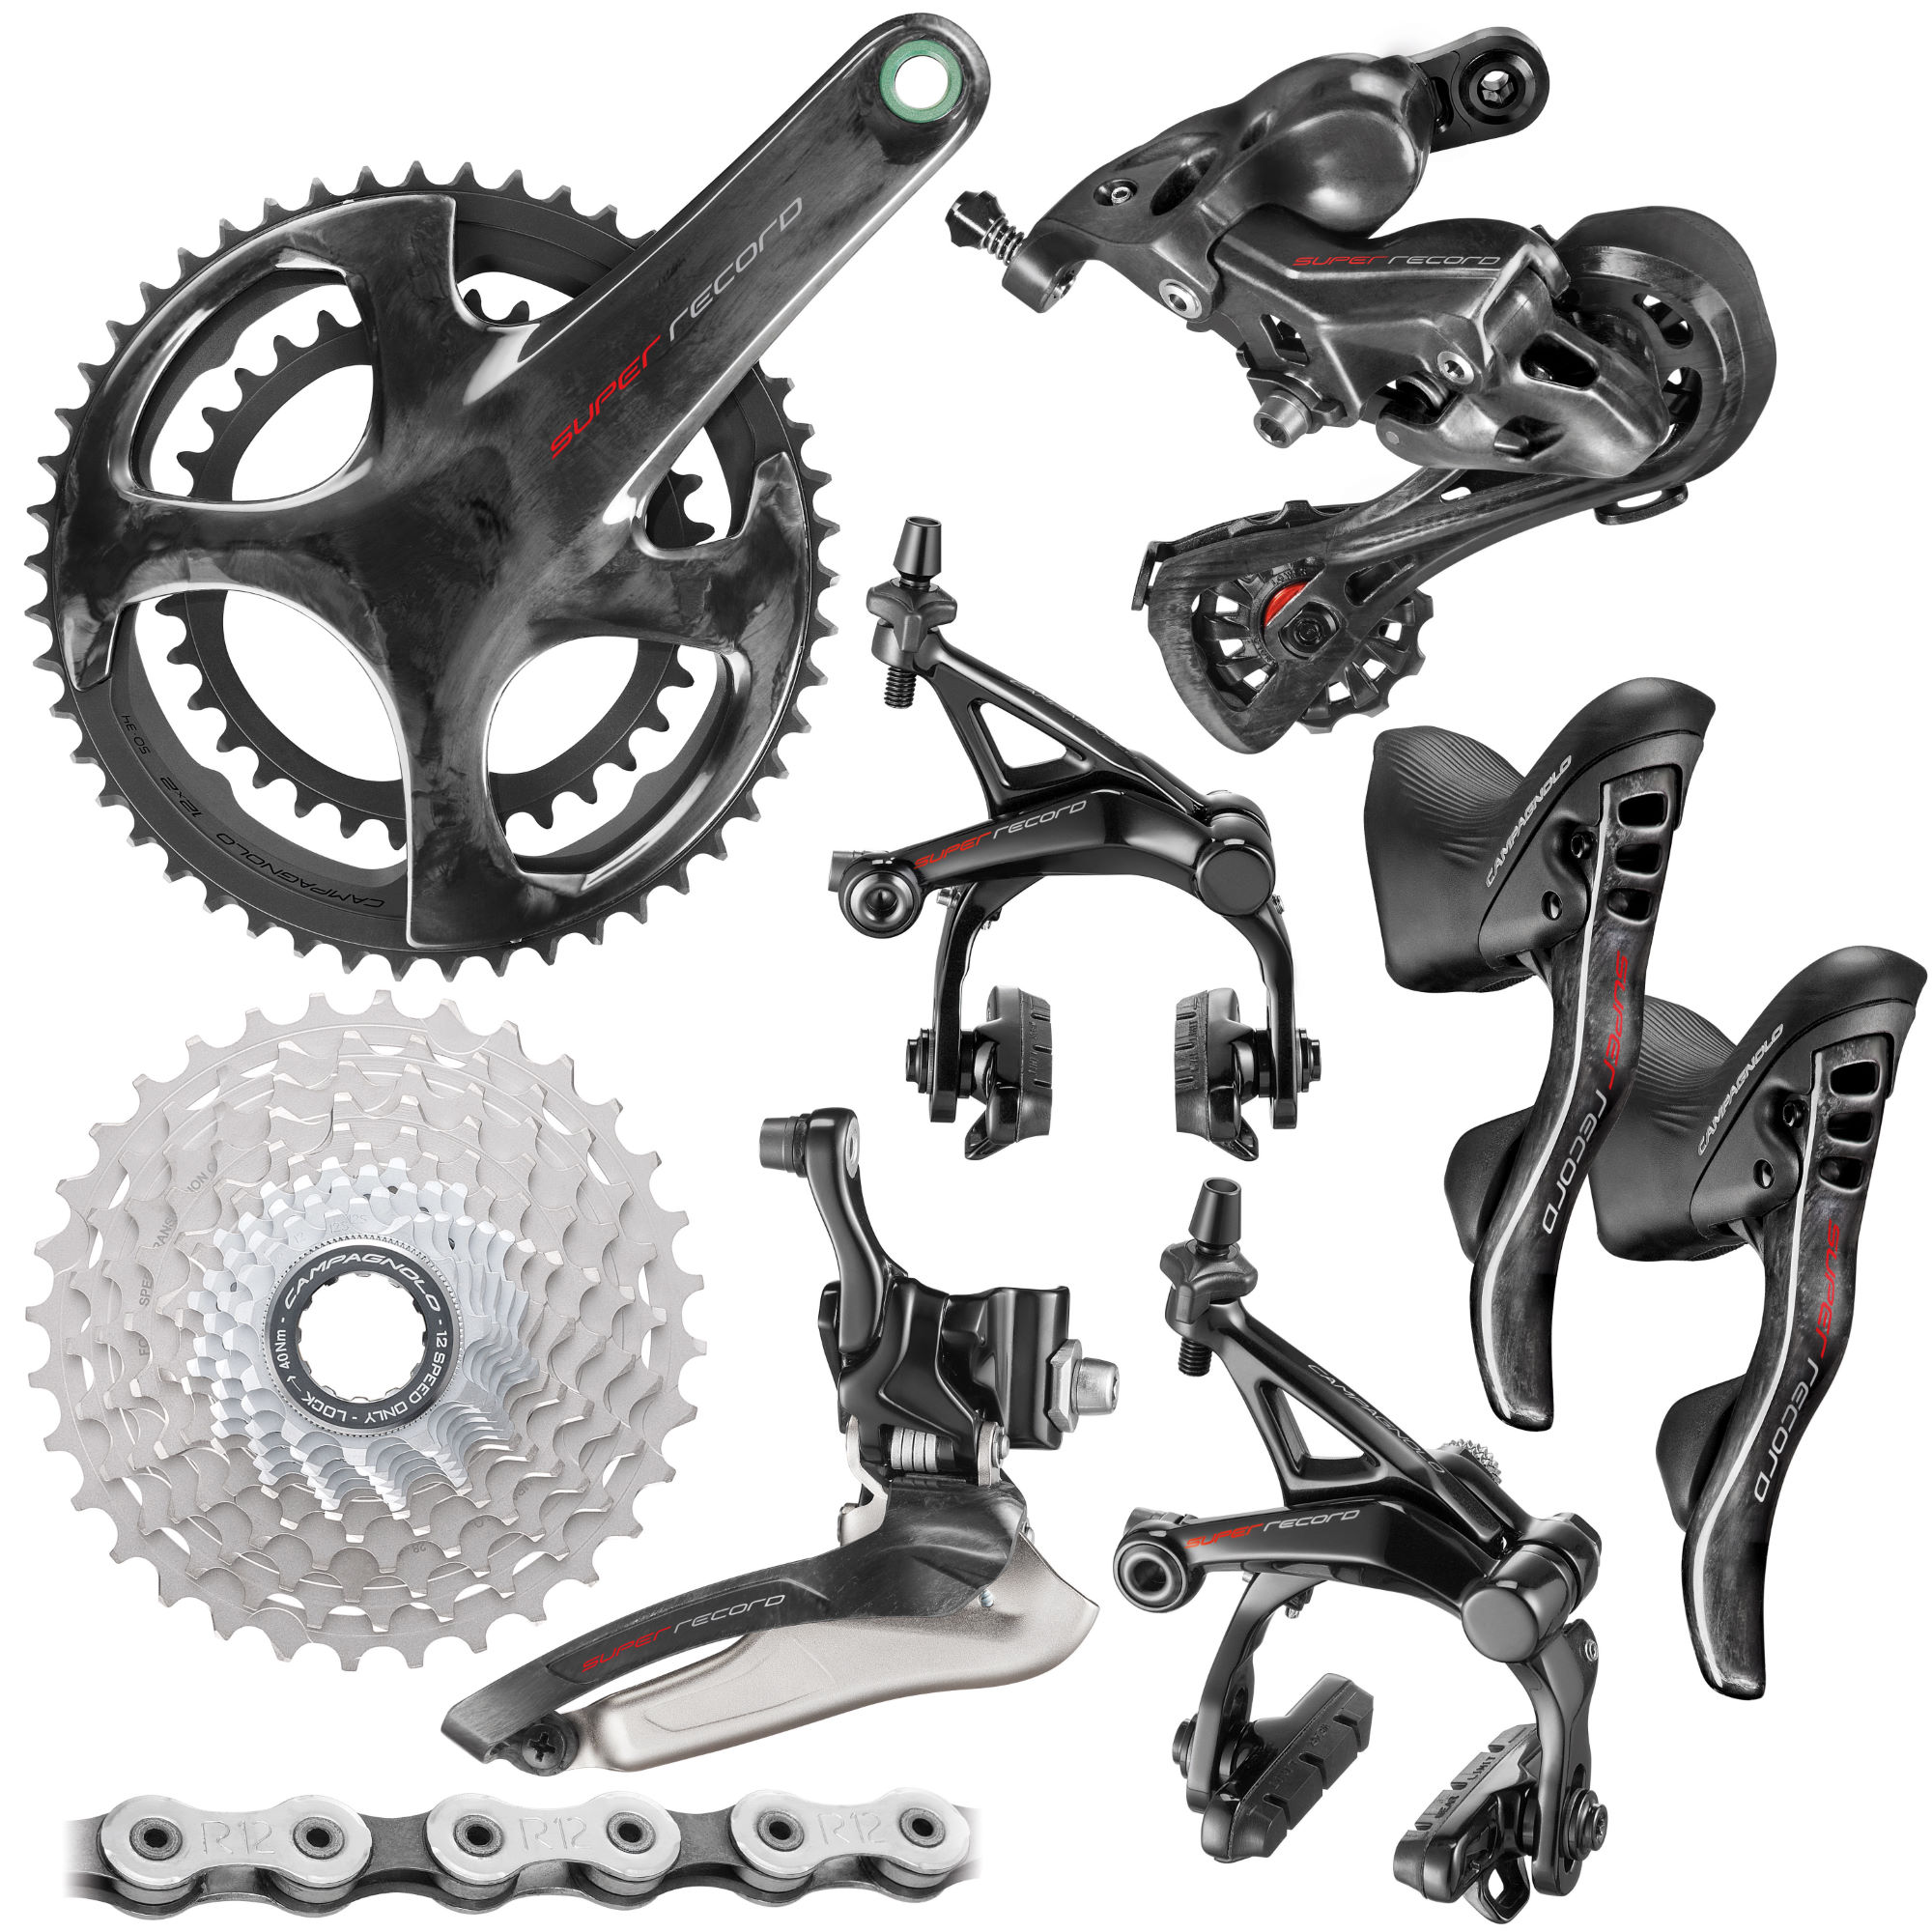 55abc9ce8e5 Road bike groupsets: 2019 hierarchies explained | SPORTEMAG.COM